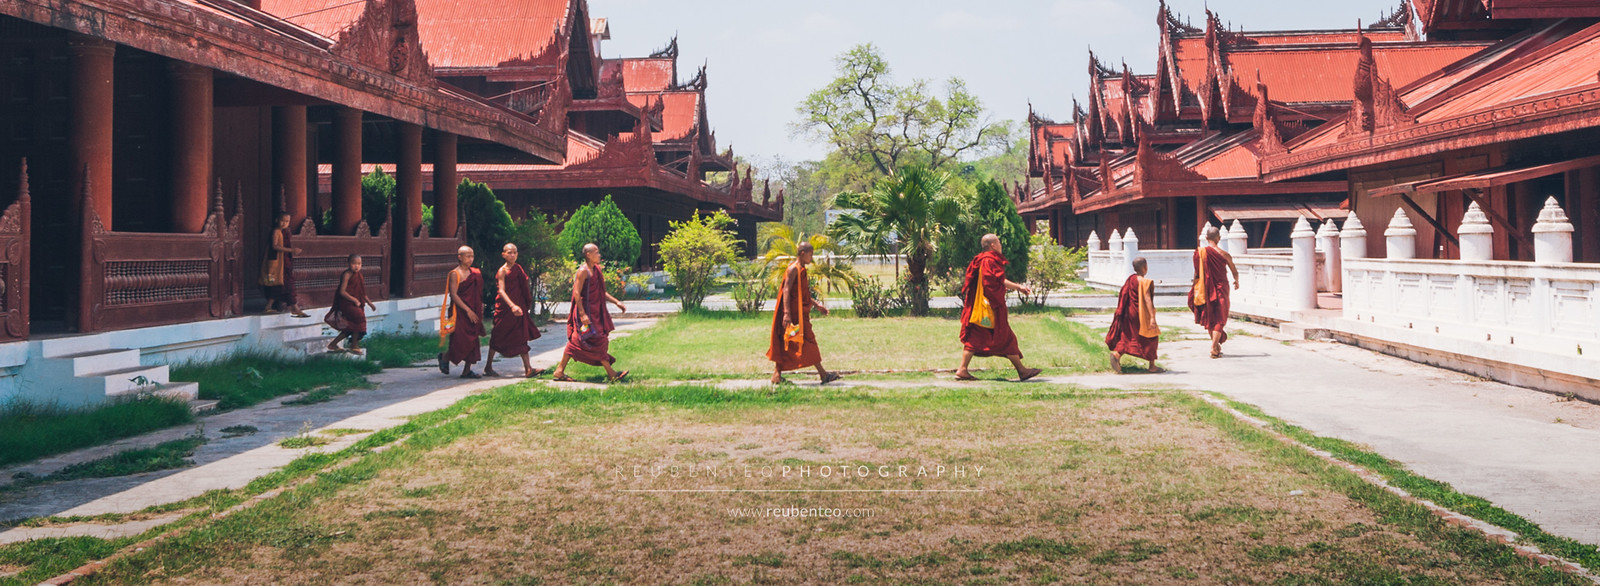 Abbey Road Monks, Mandalay